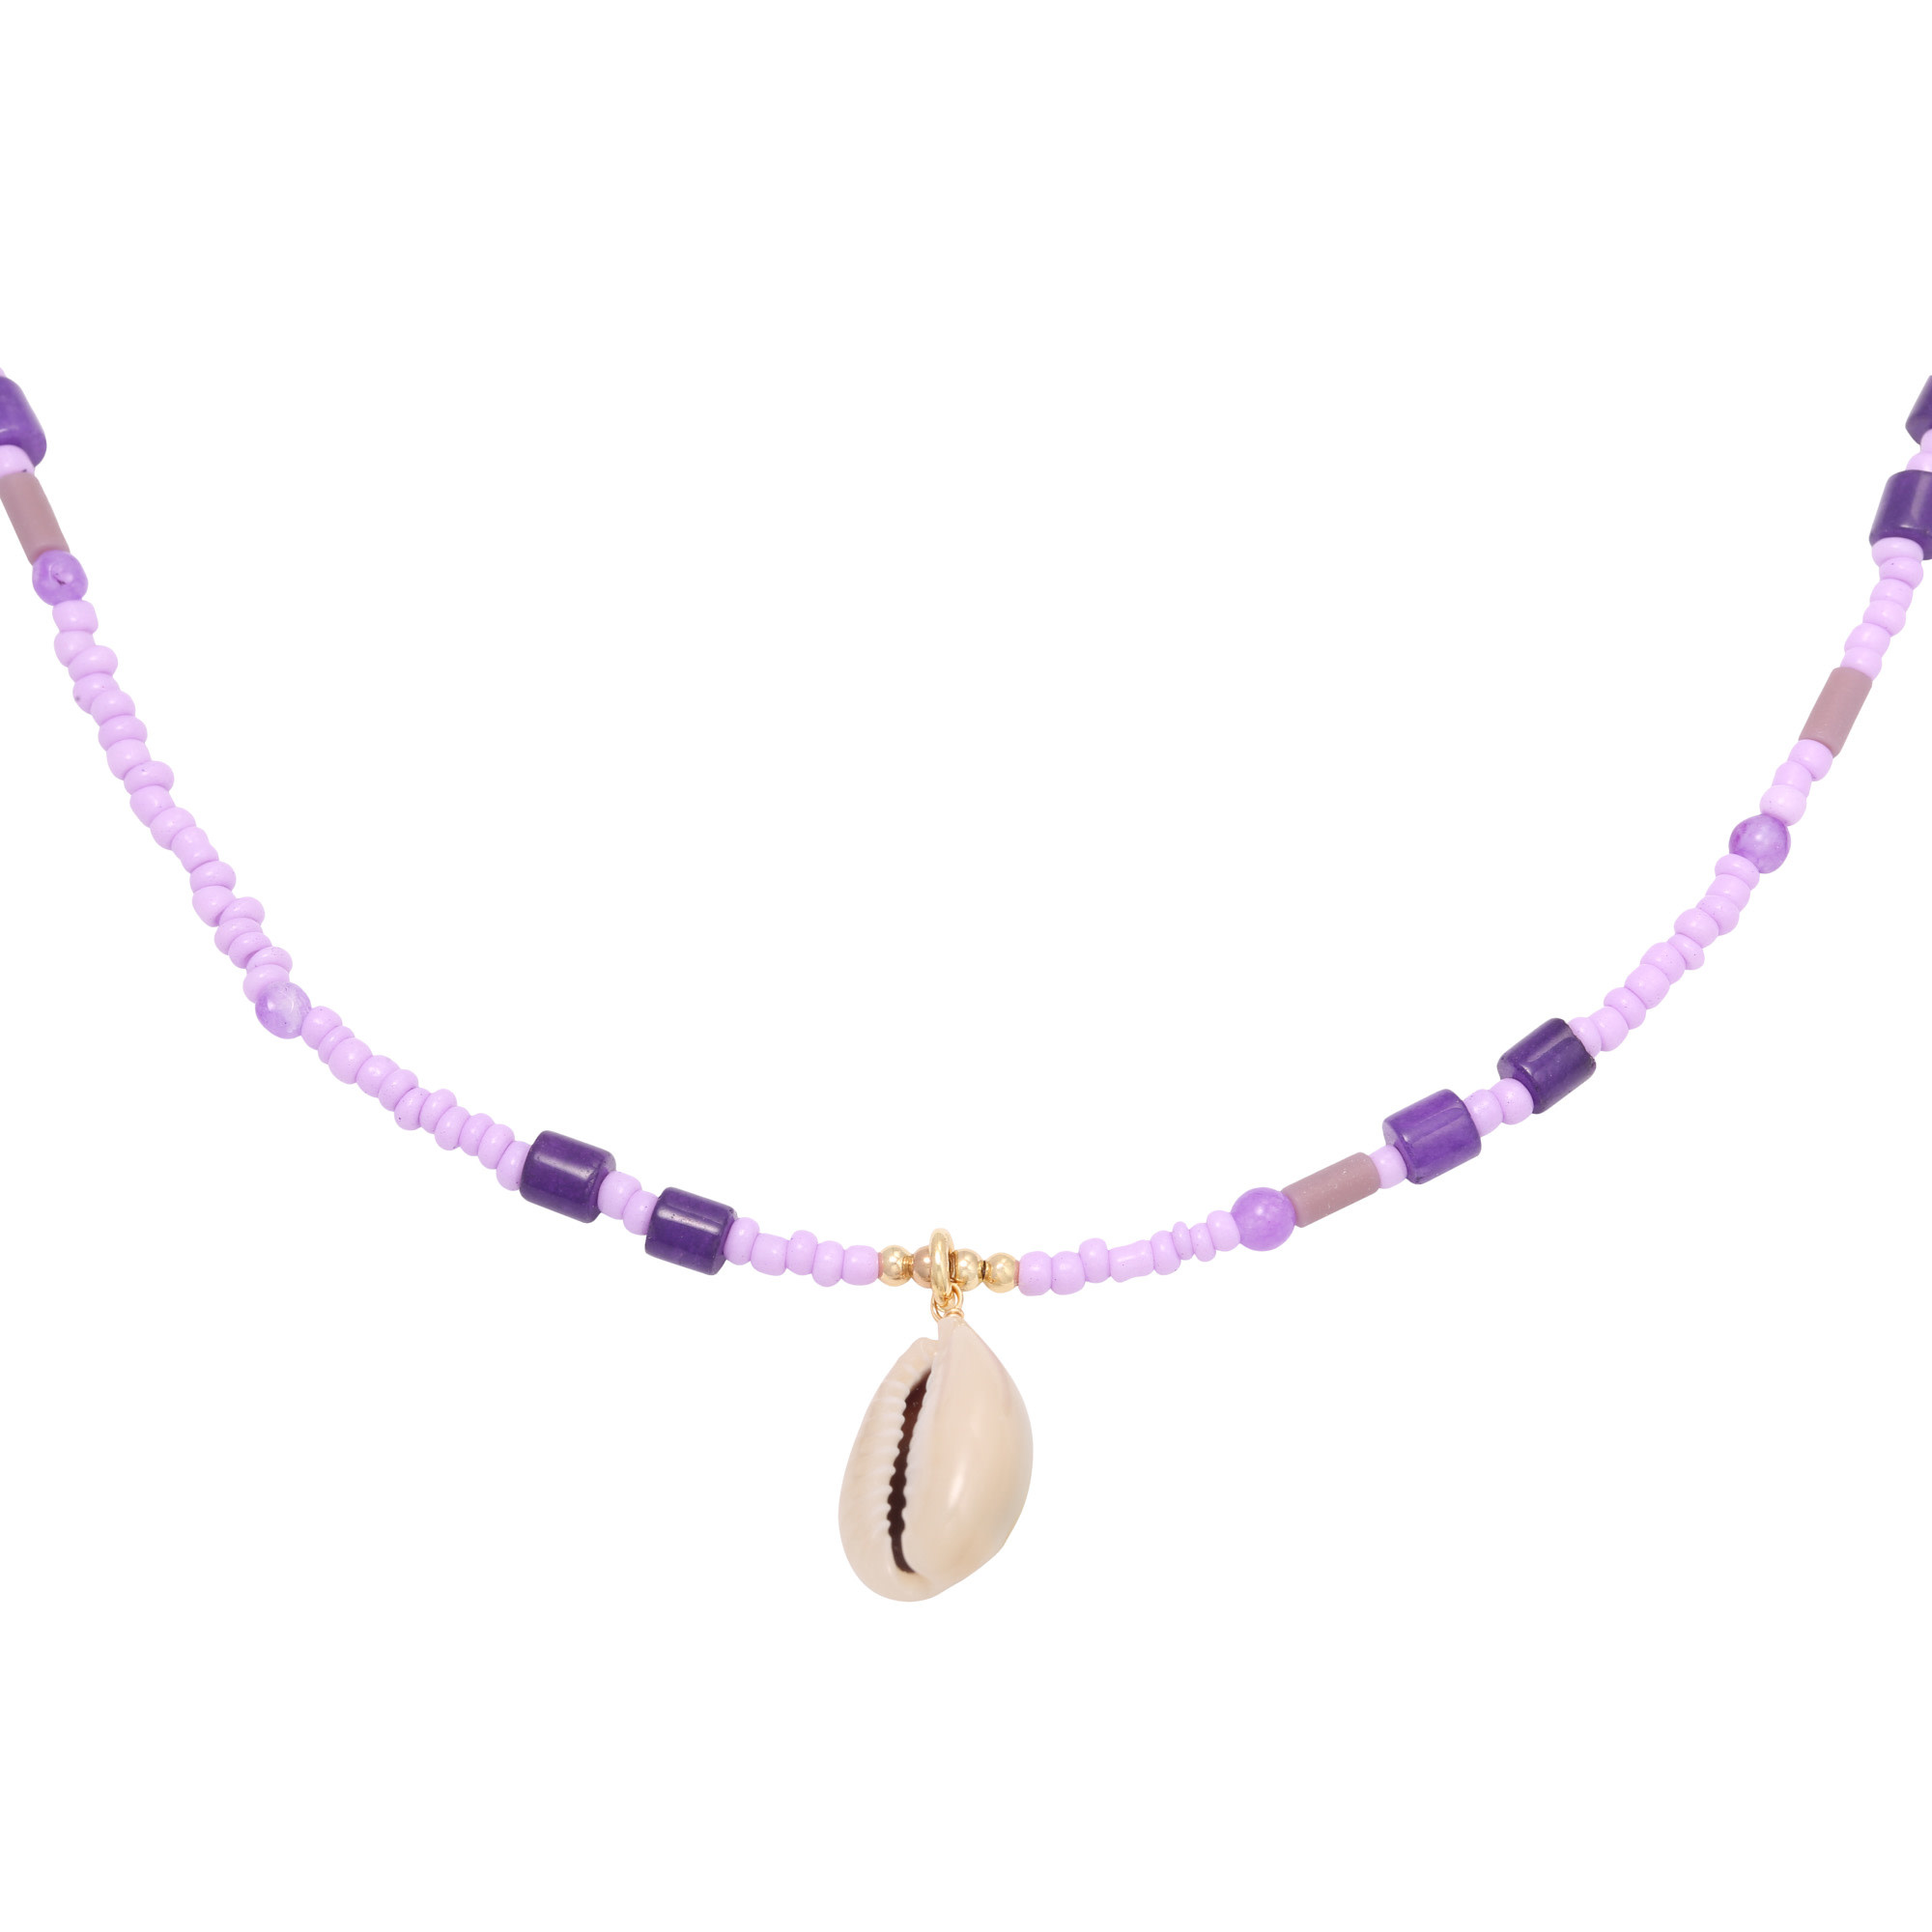 With love Necklace at the beach - Purple